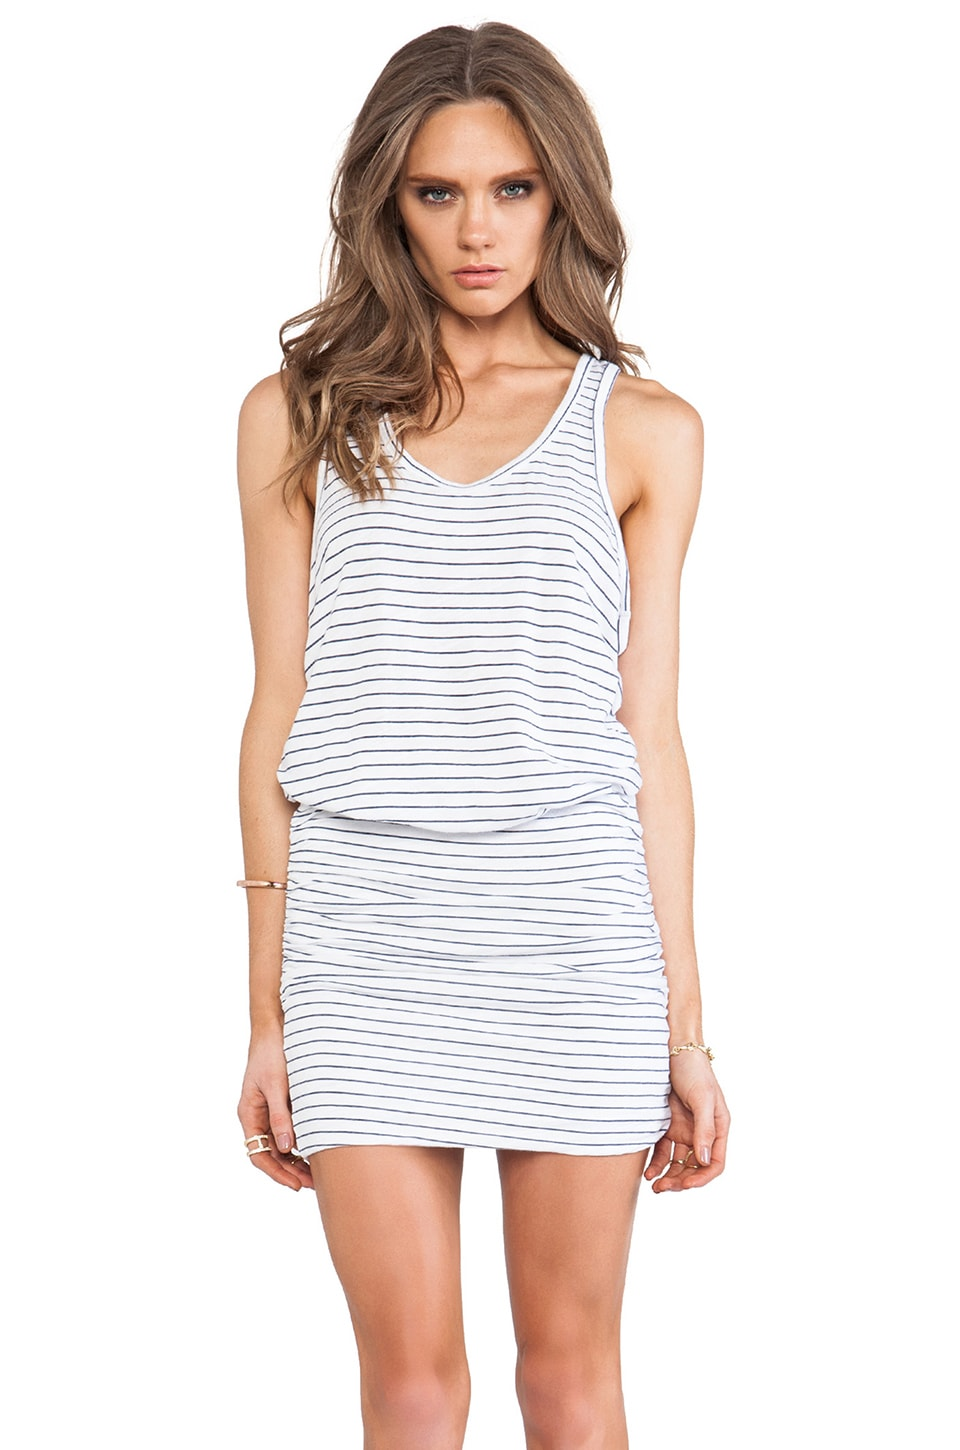 SUNDRY Rushed Tank Dress in White Stripe